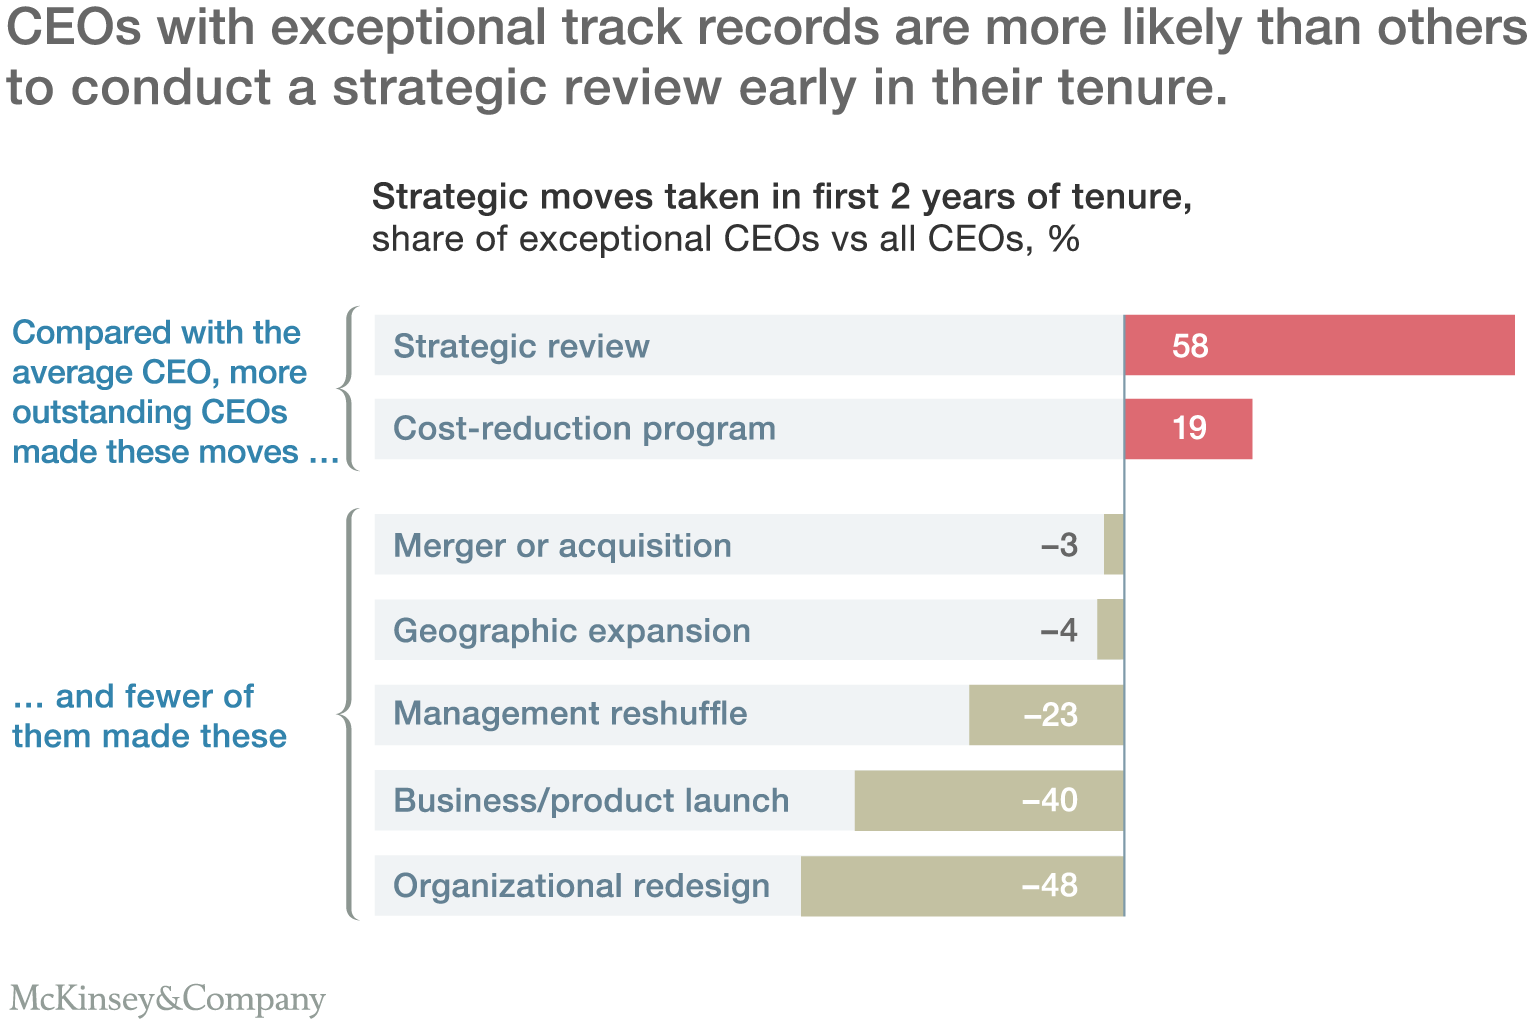 CEOs with exceptional track records are more likely than others to conduct a strategic review early in their tenure.